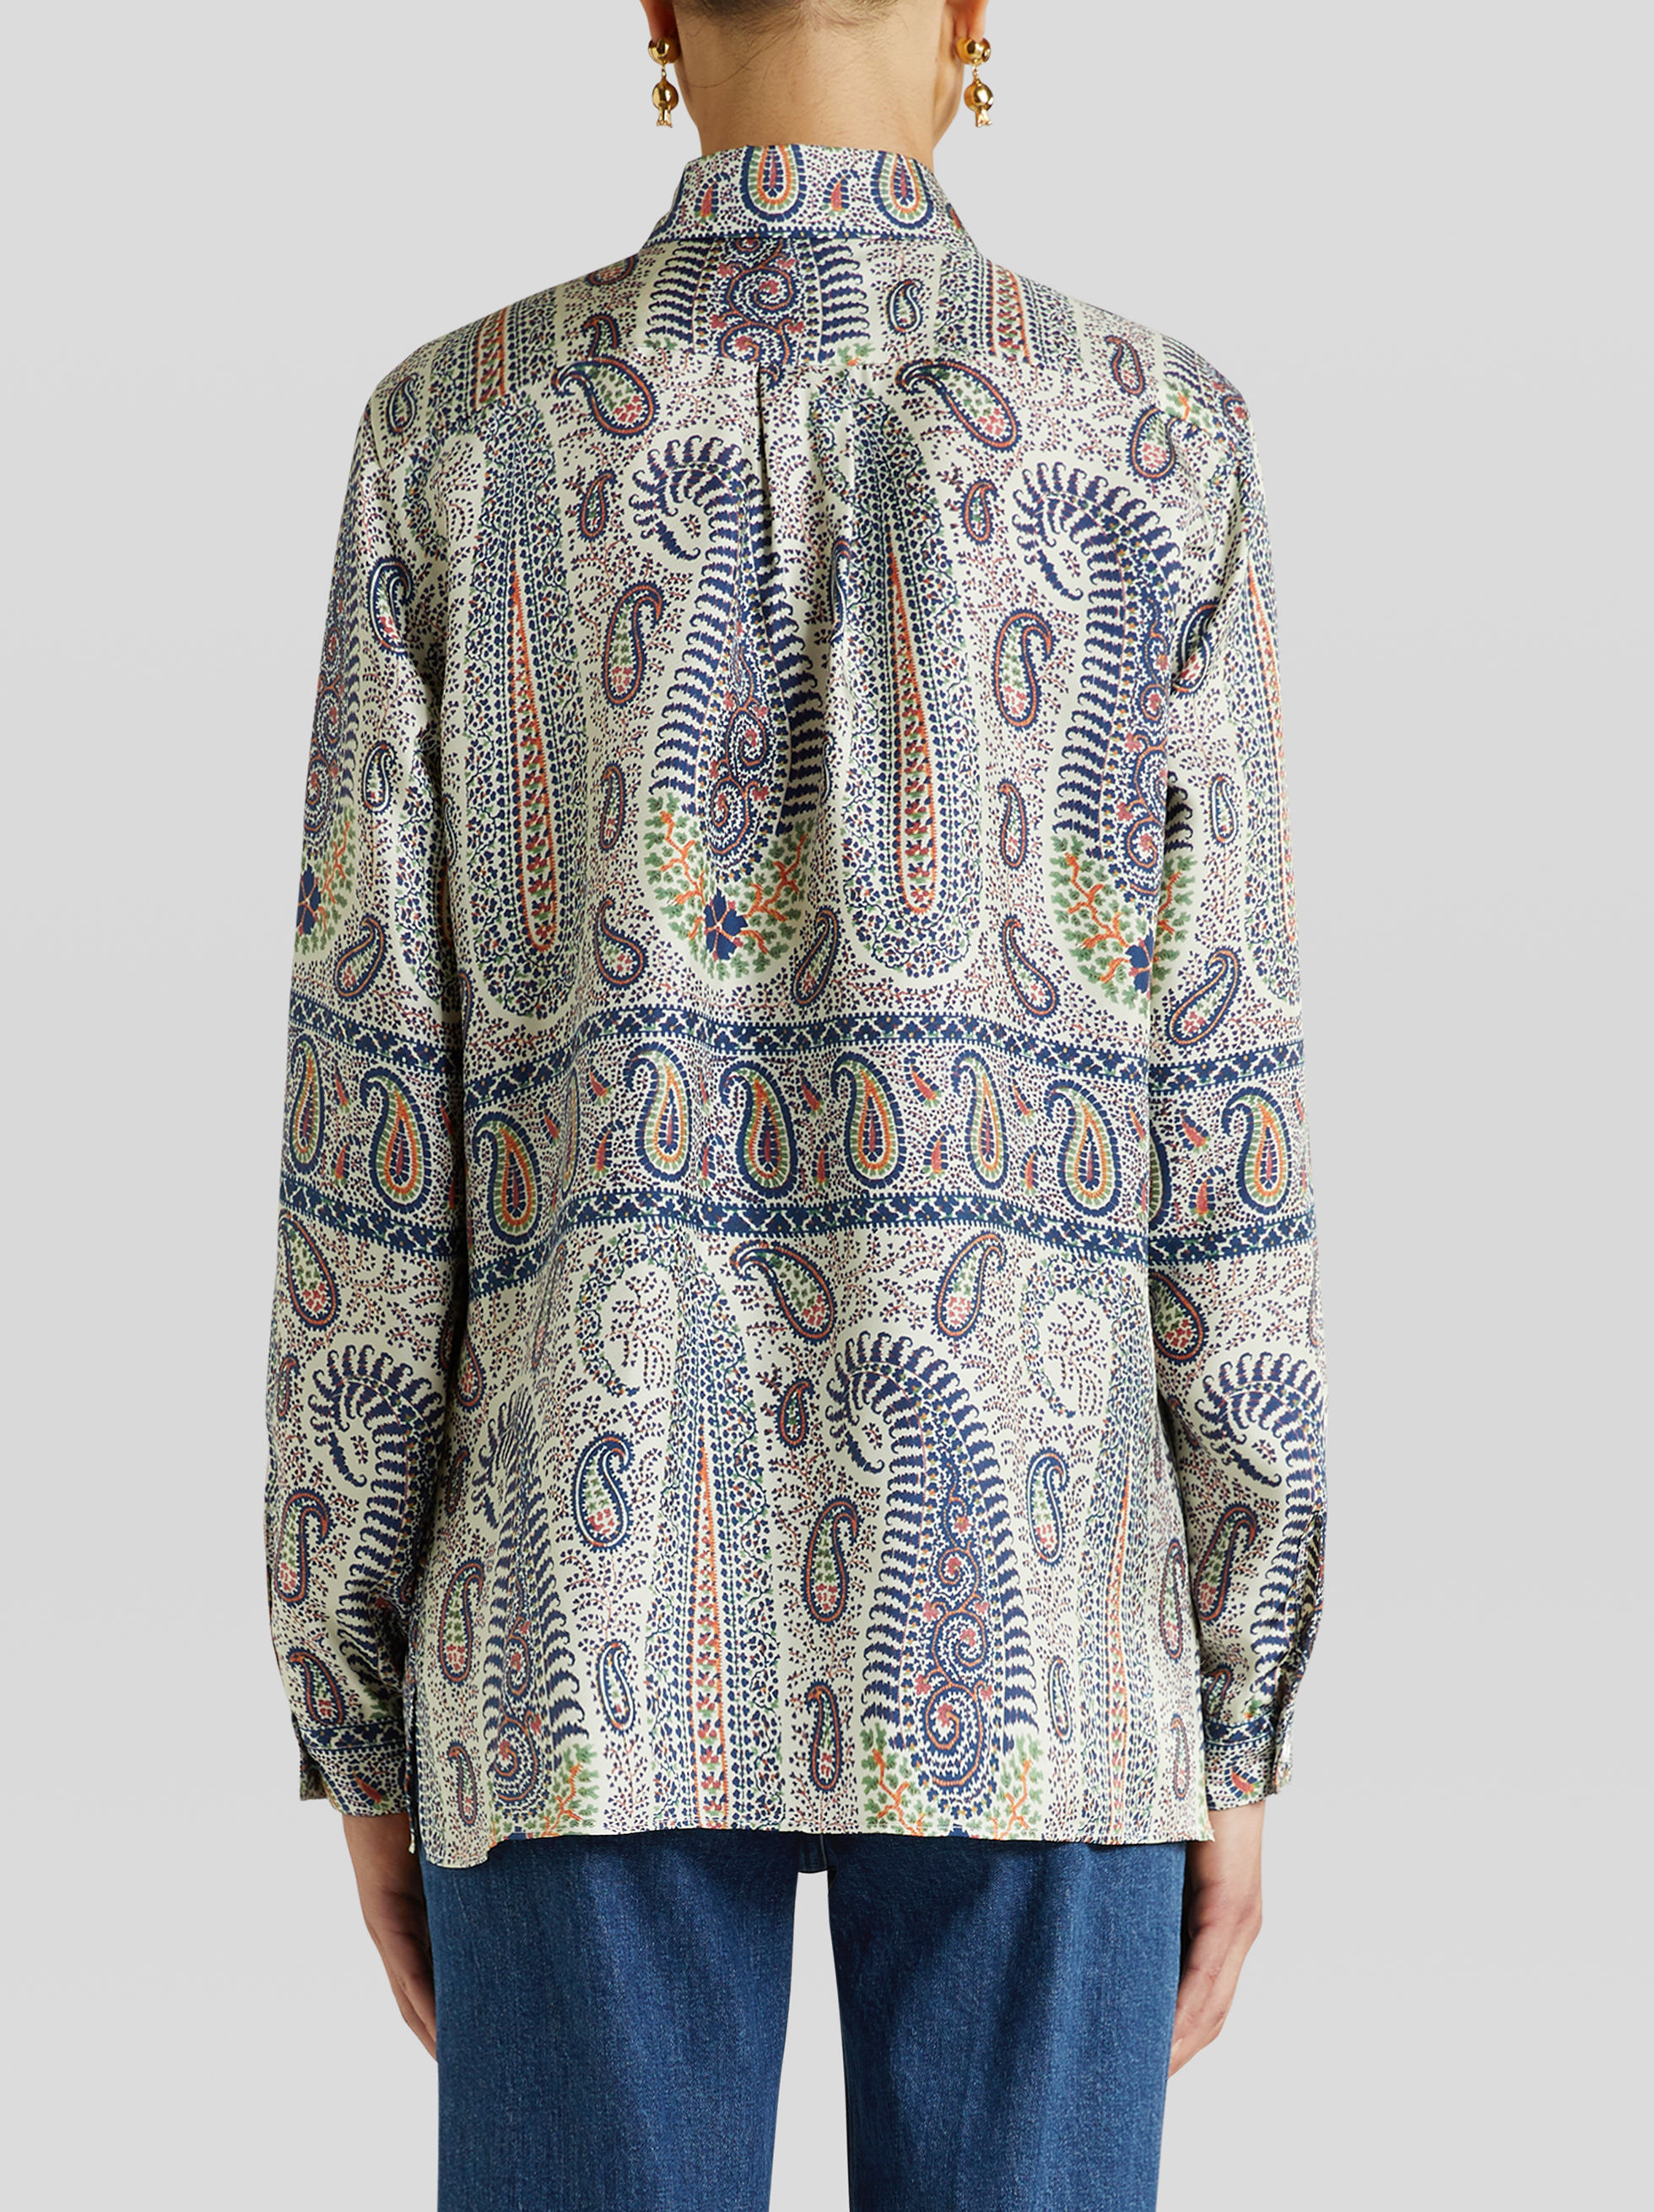 MOSAIC PAISLEY DESIGN SILK SHIRT